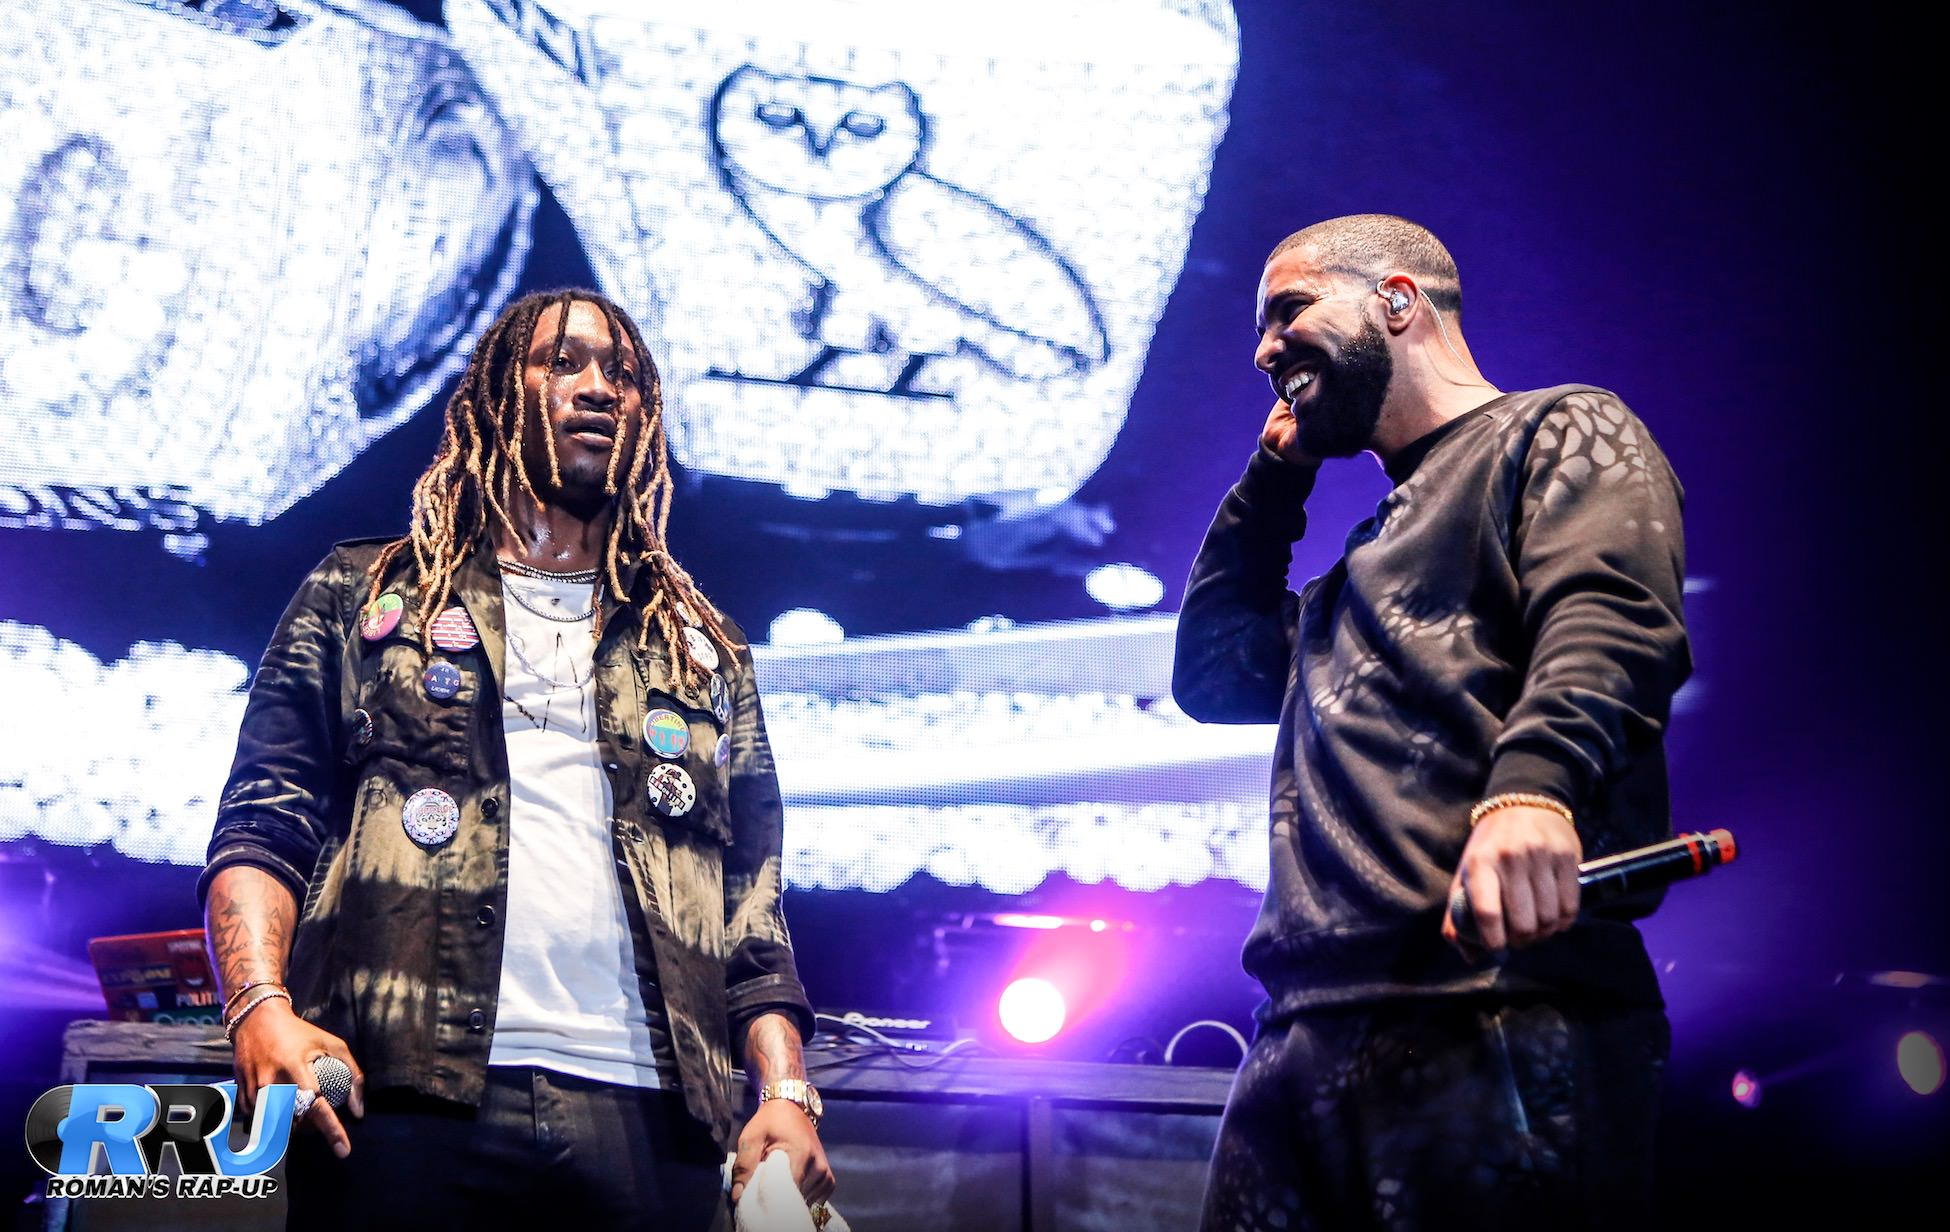 """Drake makes a surprise appearance with Future at Real 92.3's """"Real Show"""" on November 8th, 2015 (Gibson Dintersmith/Roman's Rap-Up)."""